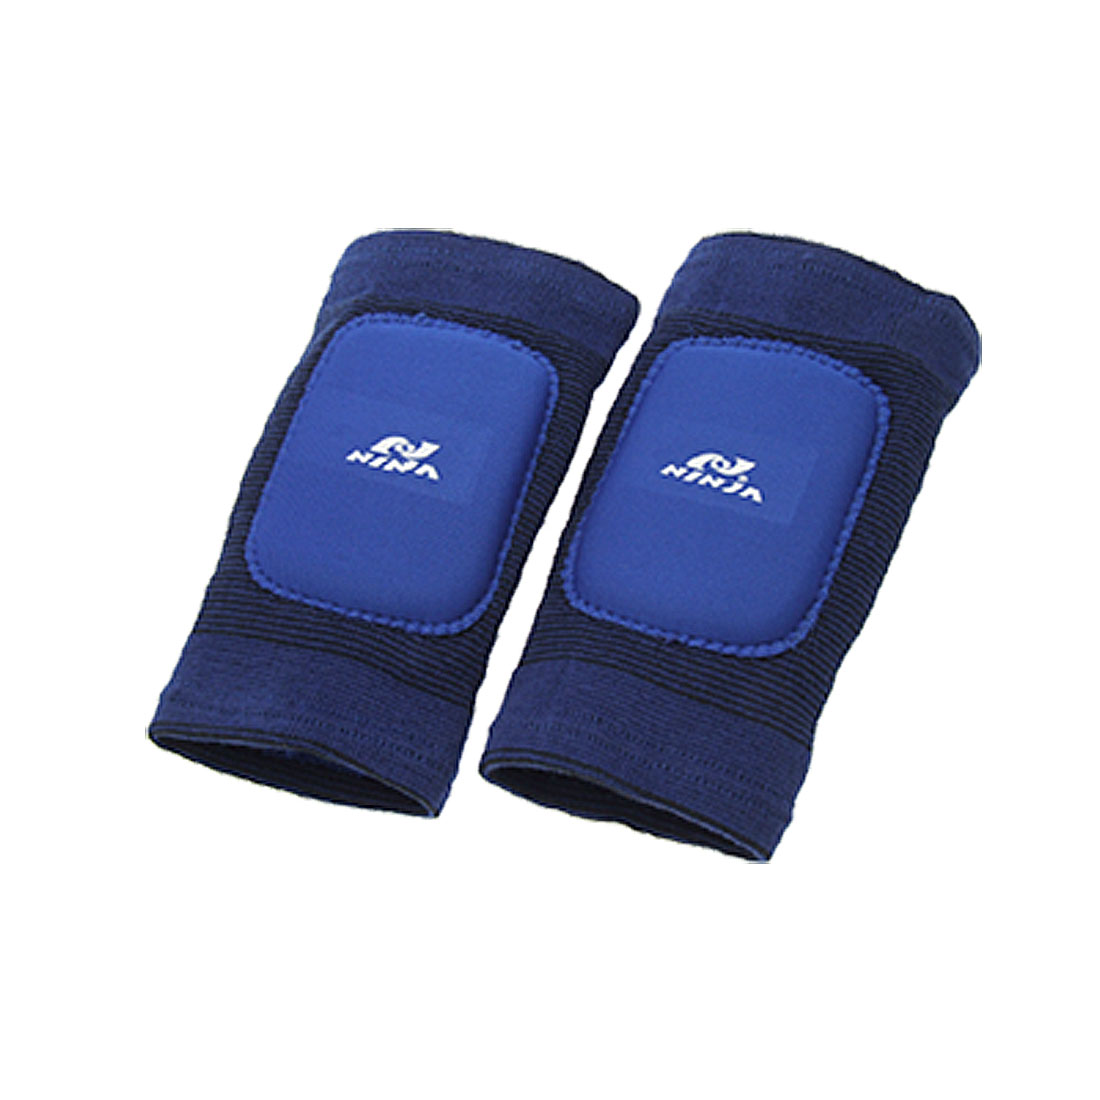 Sports Knee Support Sleeves Joint Protector Blue 2PCS for Arthritis Relief